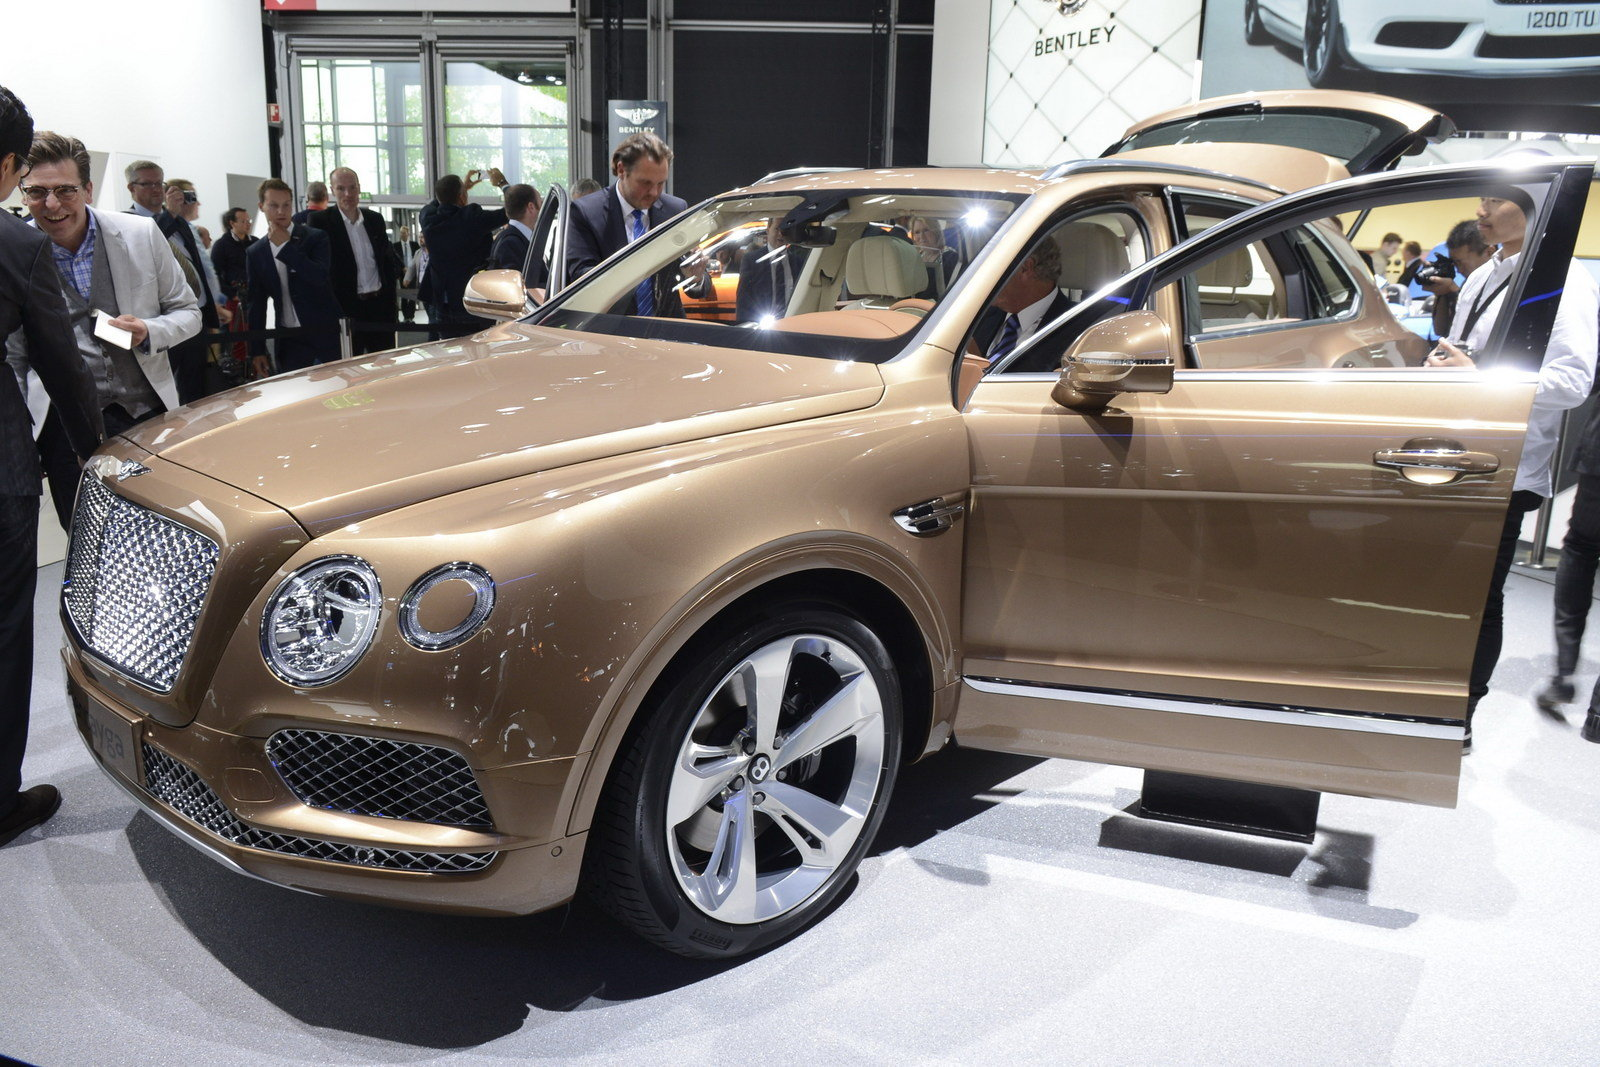 2017 bentley bentayga picture 646574 car review top speed. Black Bedroom Furniture Sets. Home Design Ideas